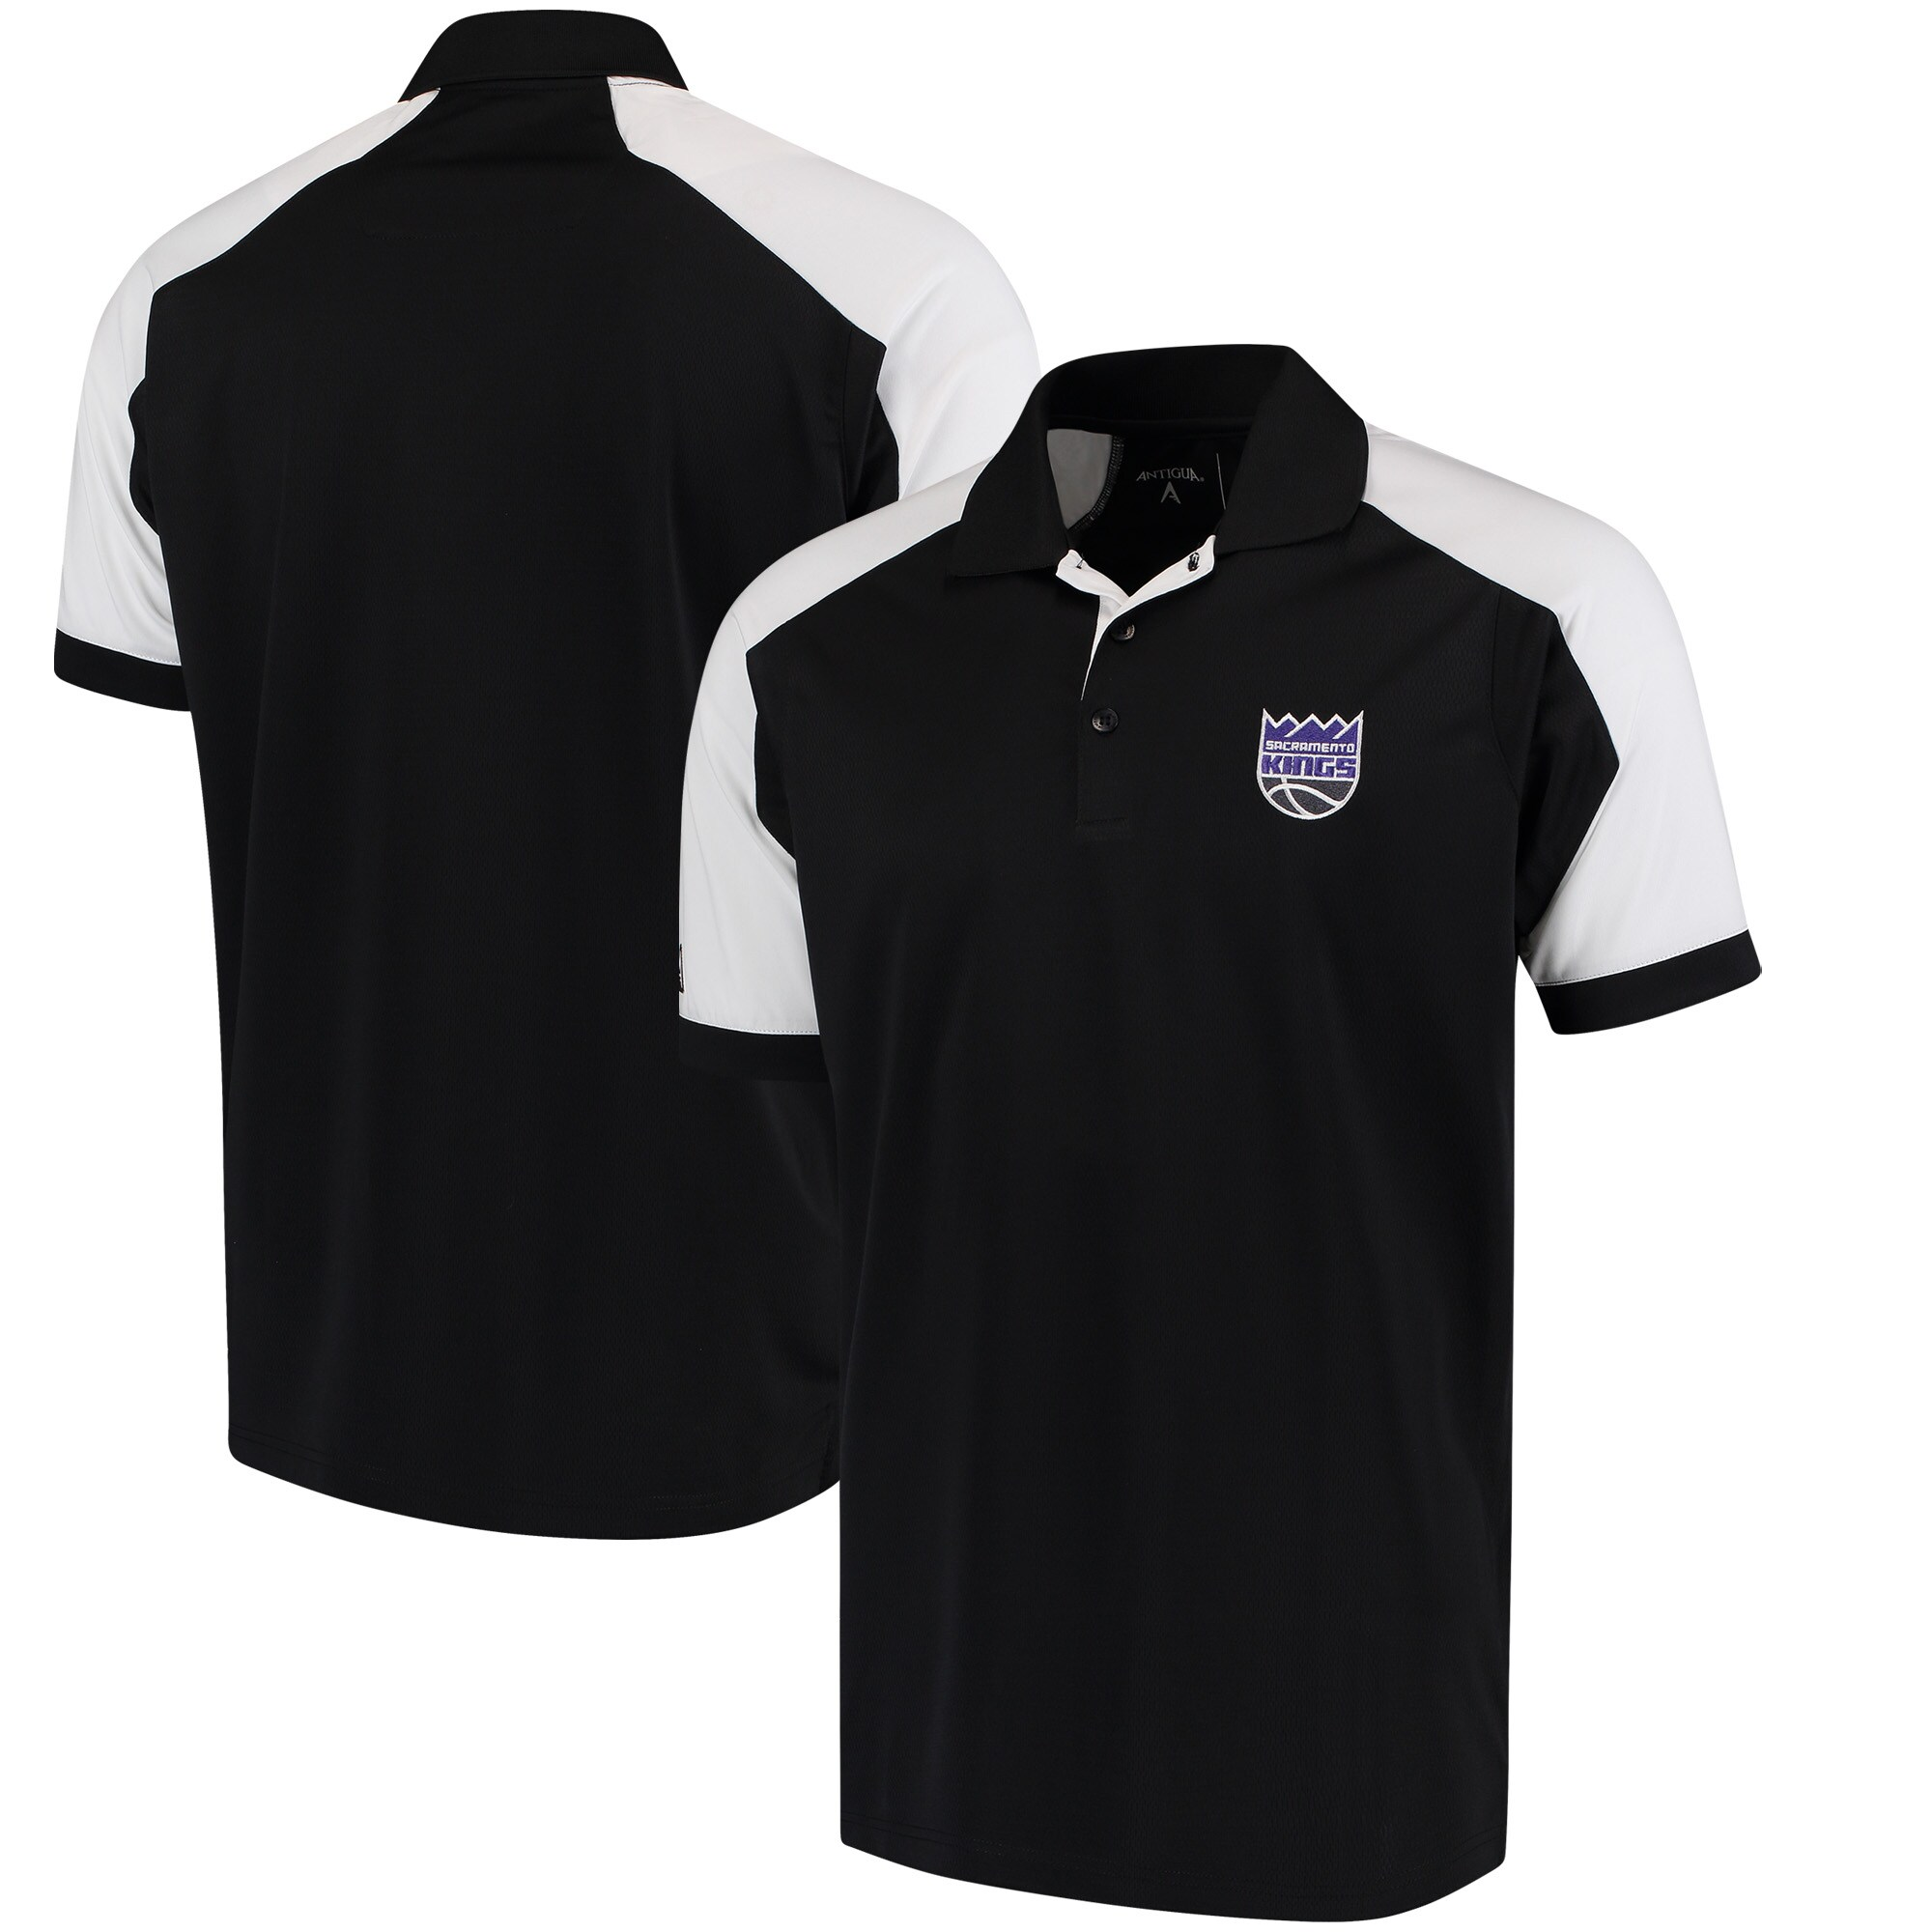 Sacramento Kings Antigua Century Performance Polo - Black/White